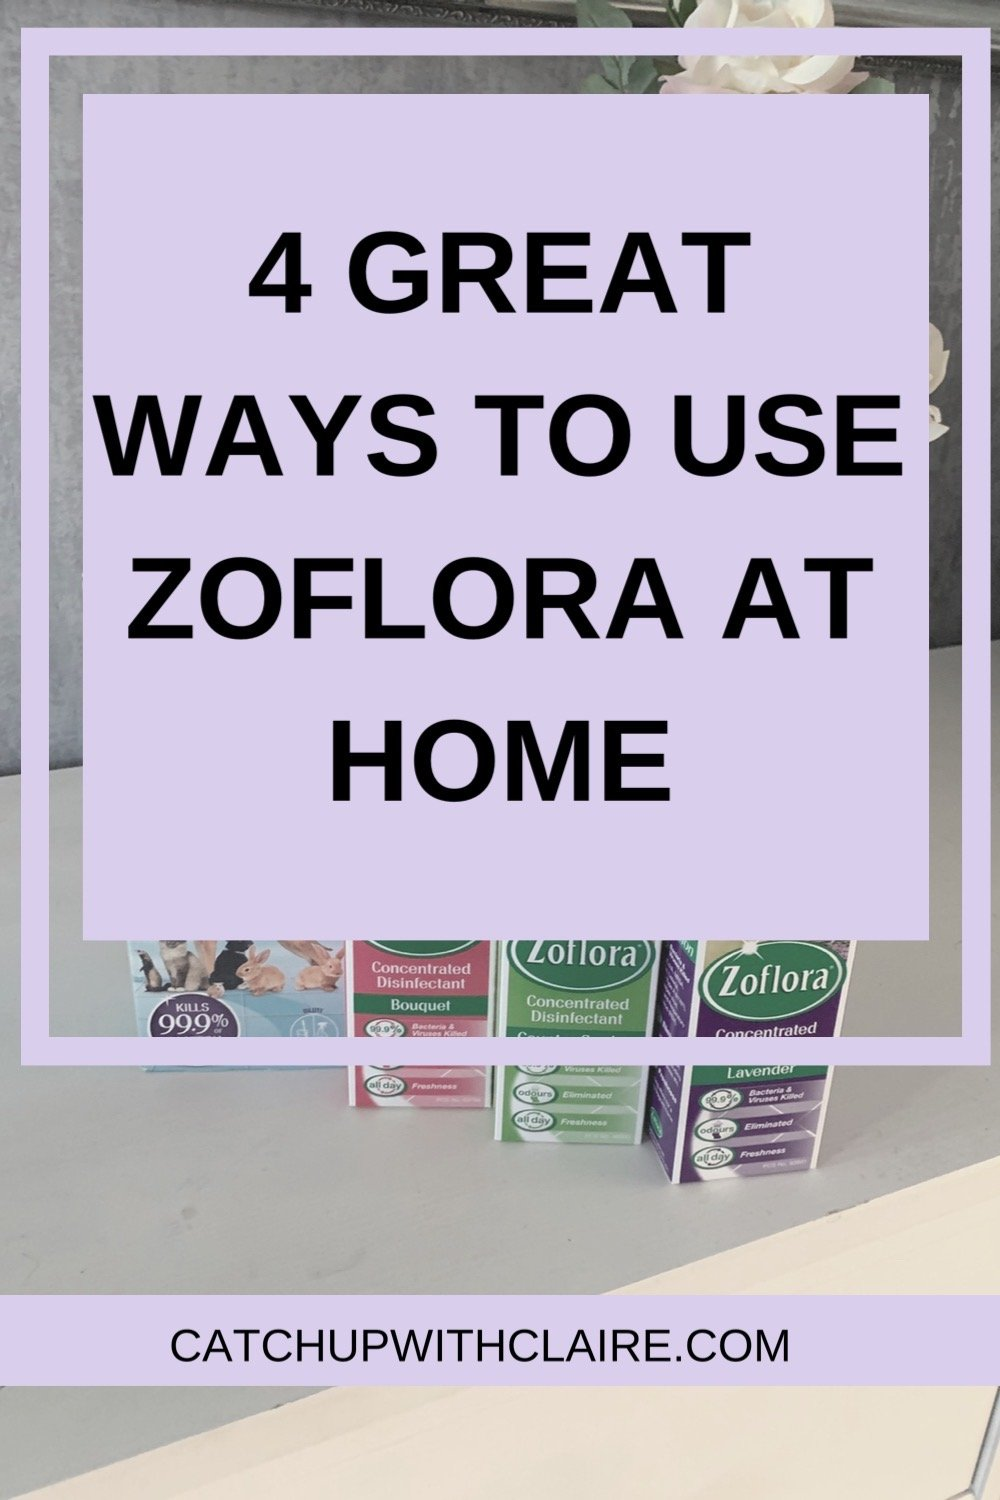 Text image in bold font which reads 4 great ways to use zoflora at home